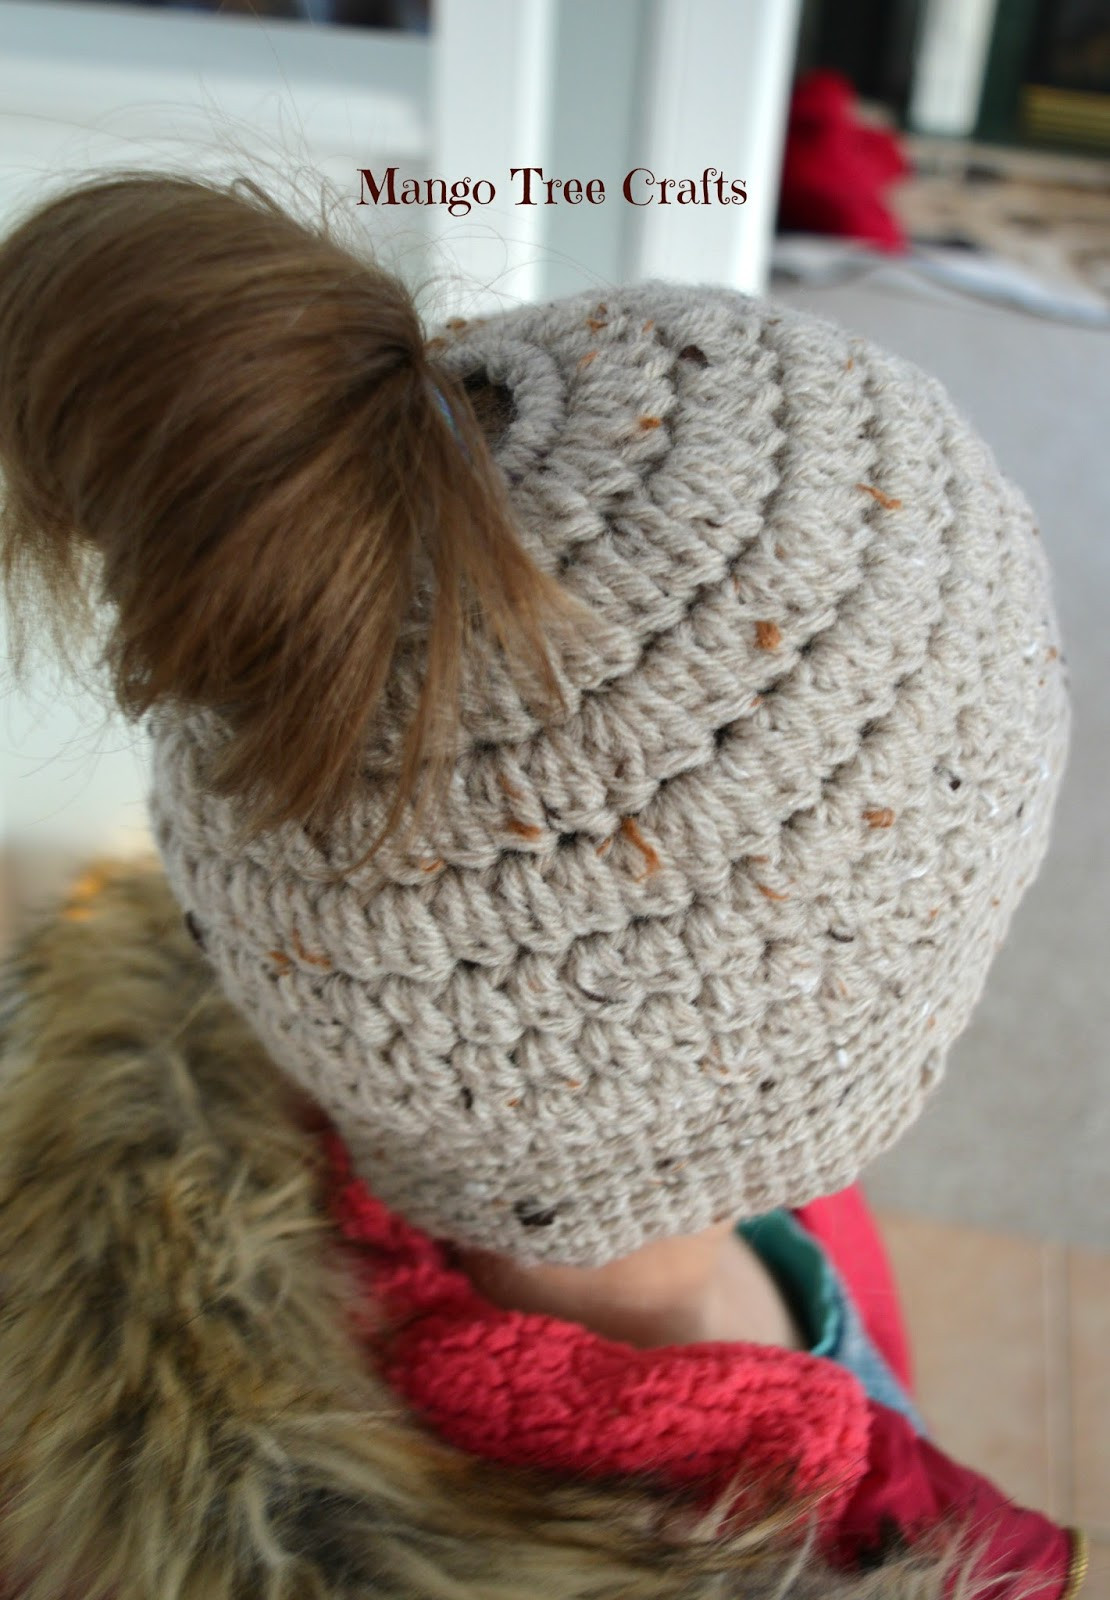 Messy Bun Hat Crochet Pattern Beautiful Mango Tree Crafts Messy Bun Hat Free Crochet Pattern Size Of Amazing 47 Images Messy Bun Hat Crochet Pattern